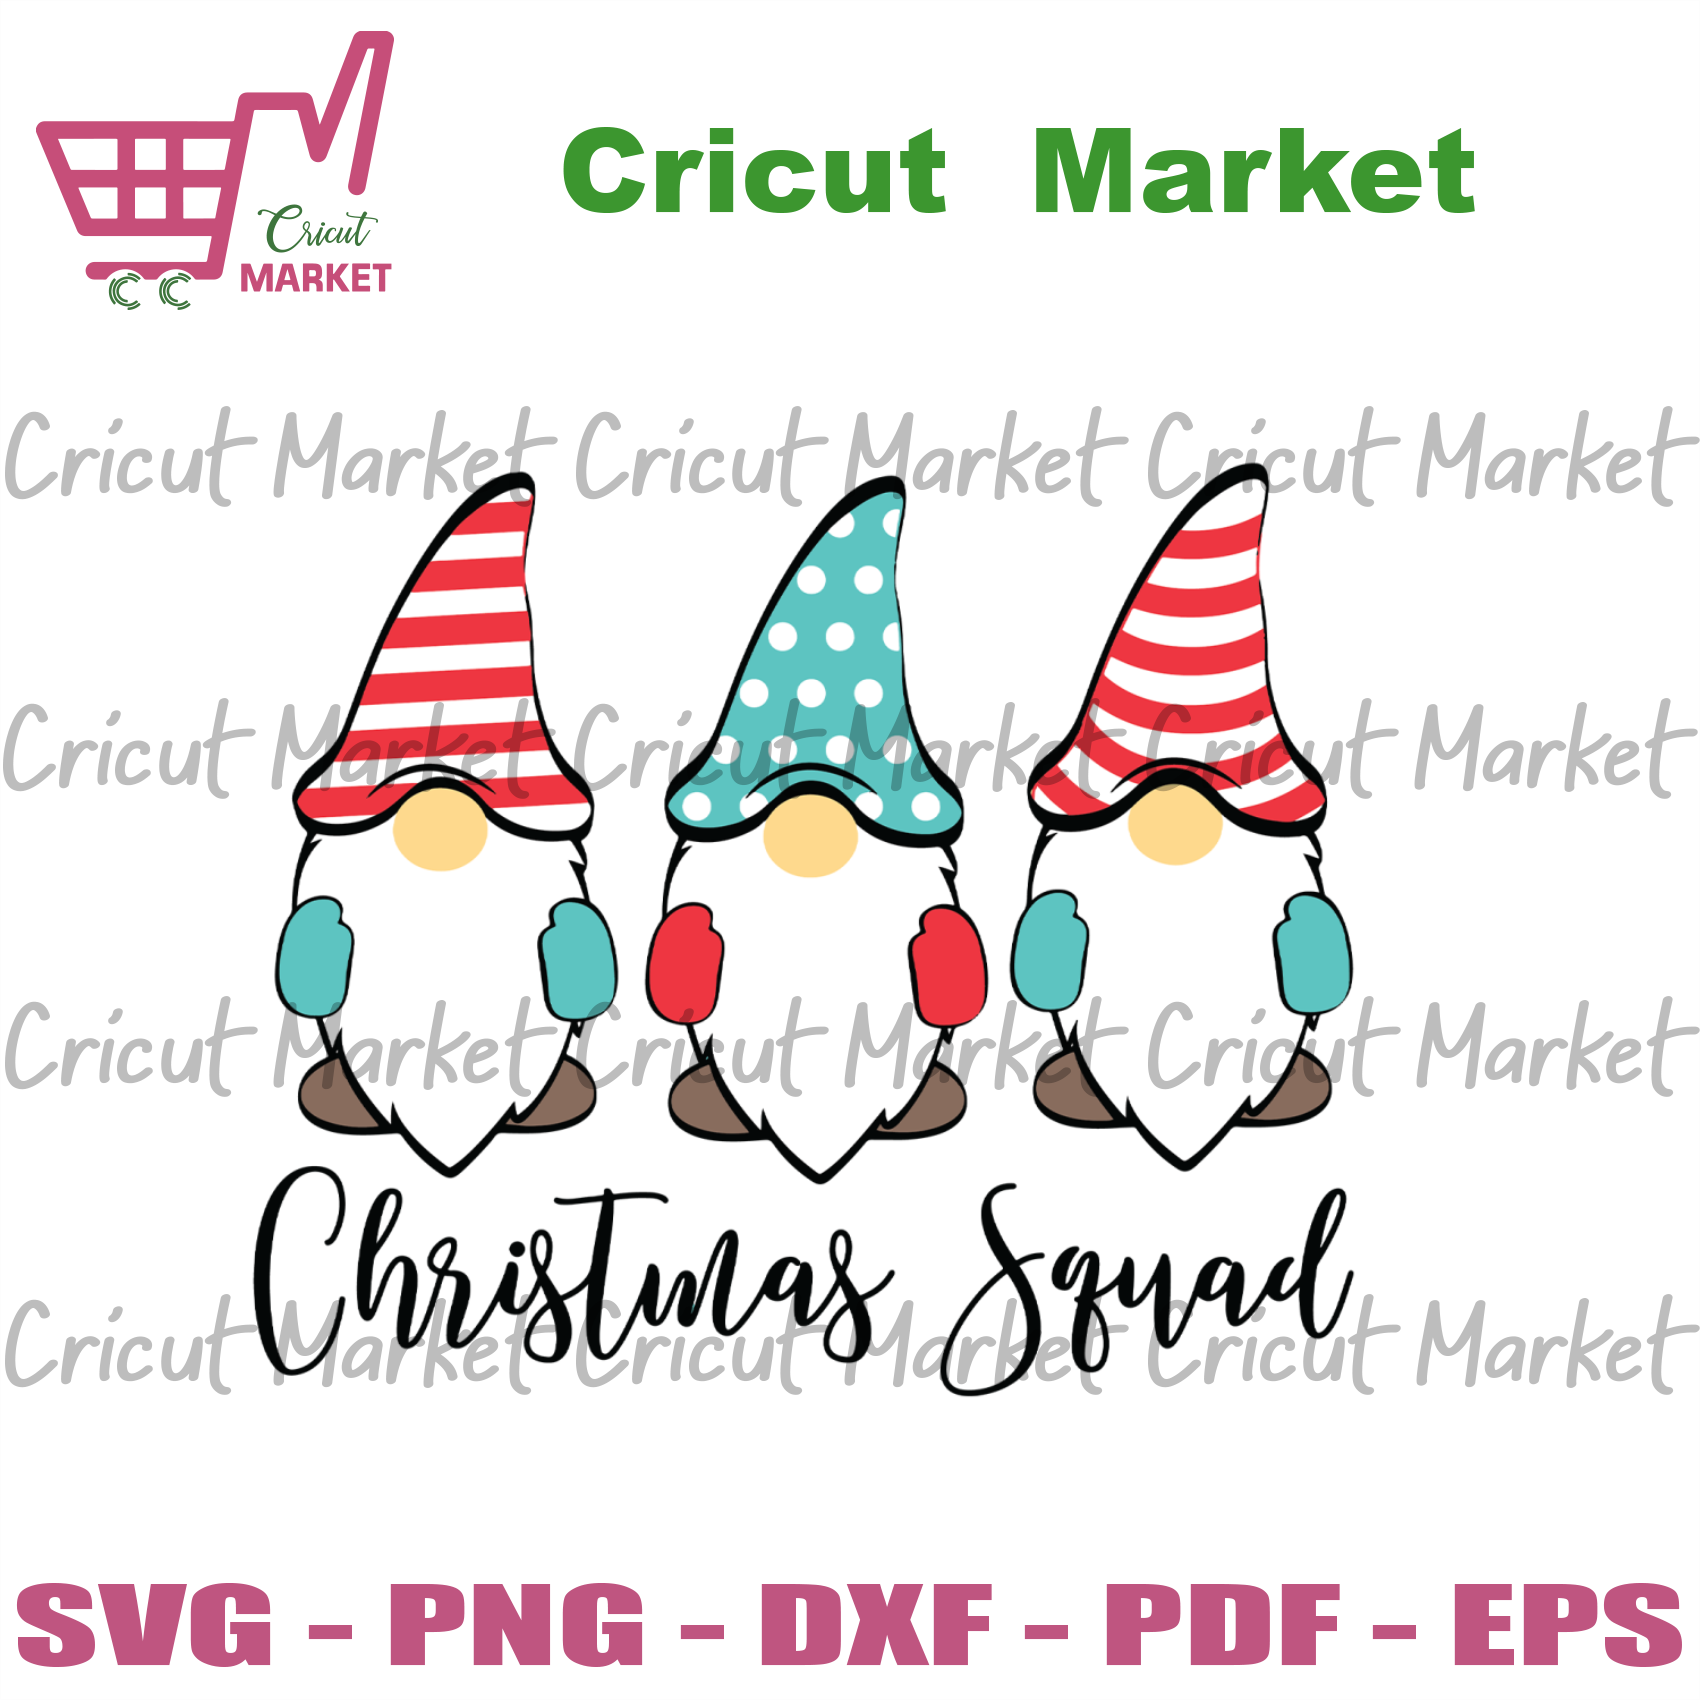 Christmas Gnomies Squad, Christmas Svg, Gnomies Svg, Love Gnomies, Gnomies Shirt, Gnomies Gift, Christmas Gnomies, Christmas Gifts, Merry Christmas, Christmas Holiday, Christmas Party, Funny